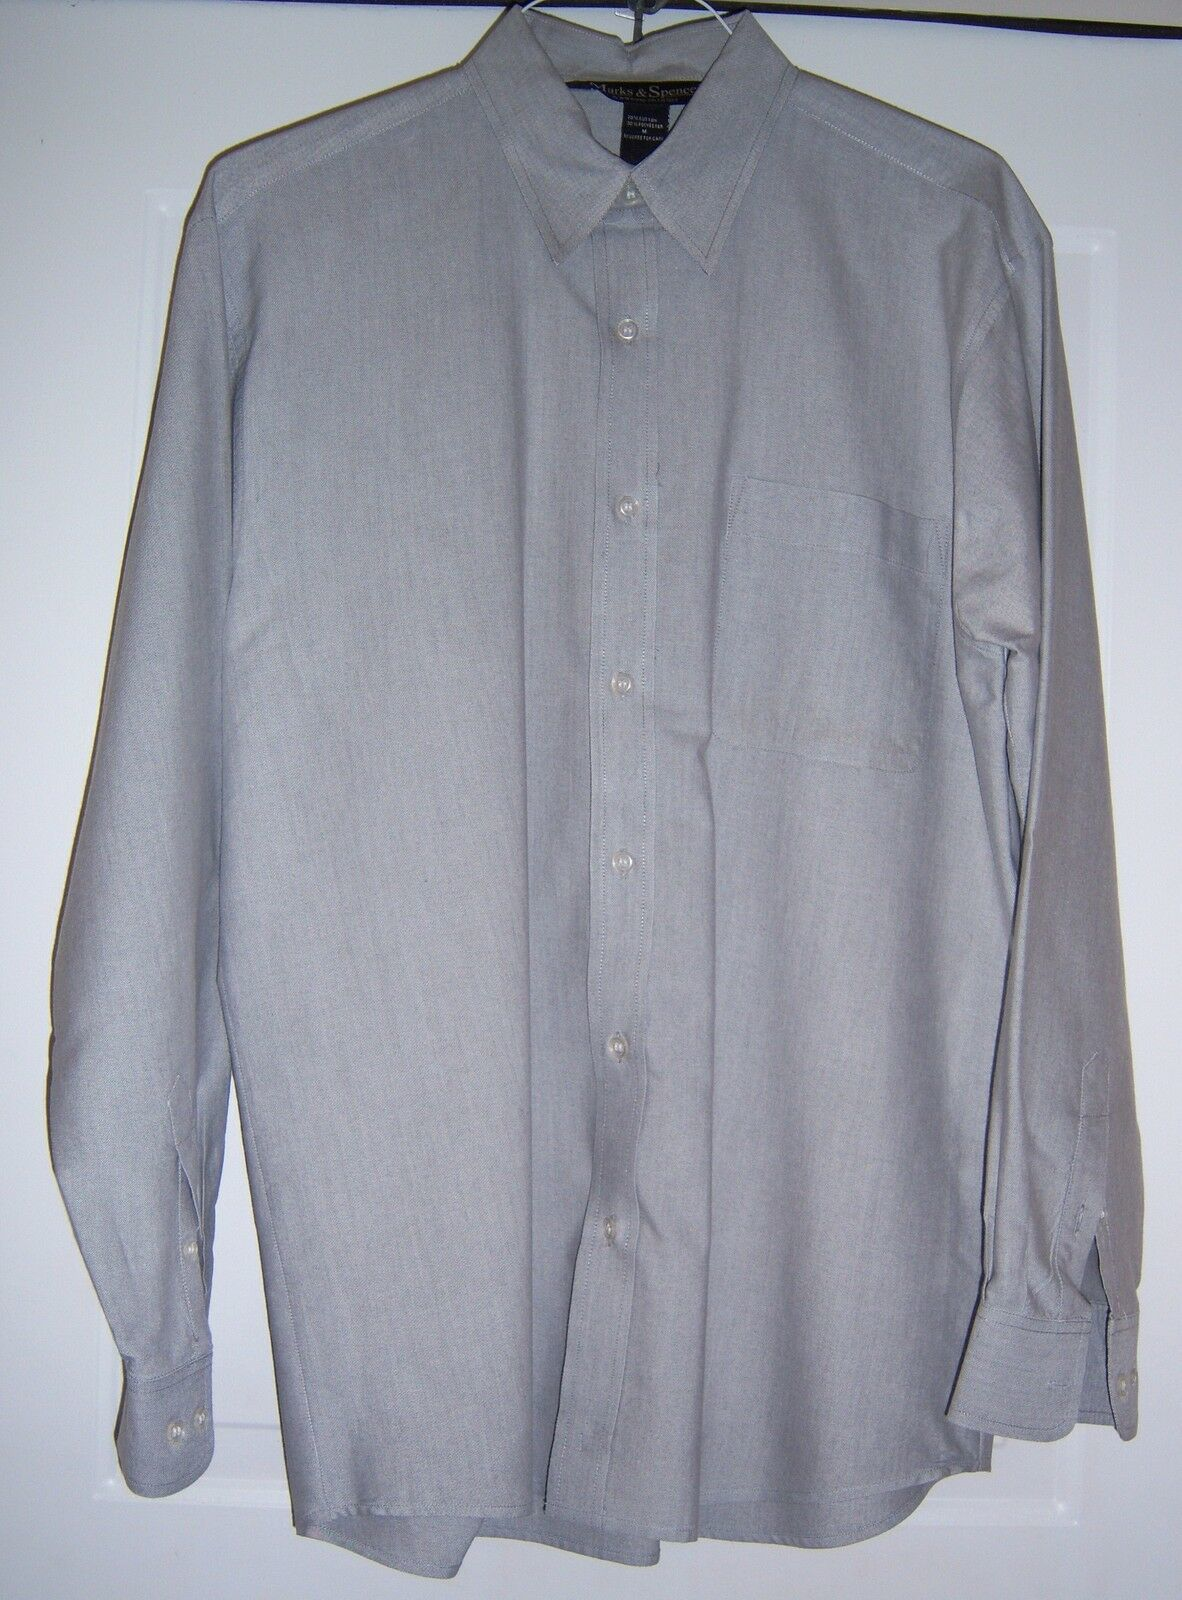 MARKS AND SPENCER Oxford Style Shirt Cotton blend L/S Gray Men's M image 5